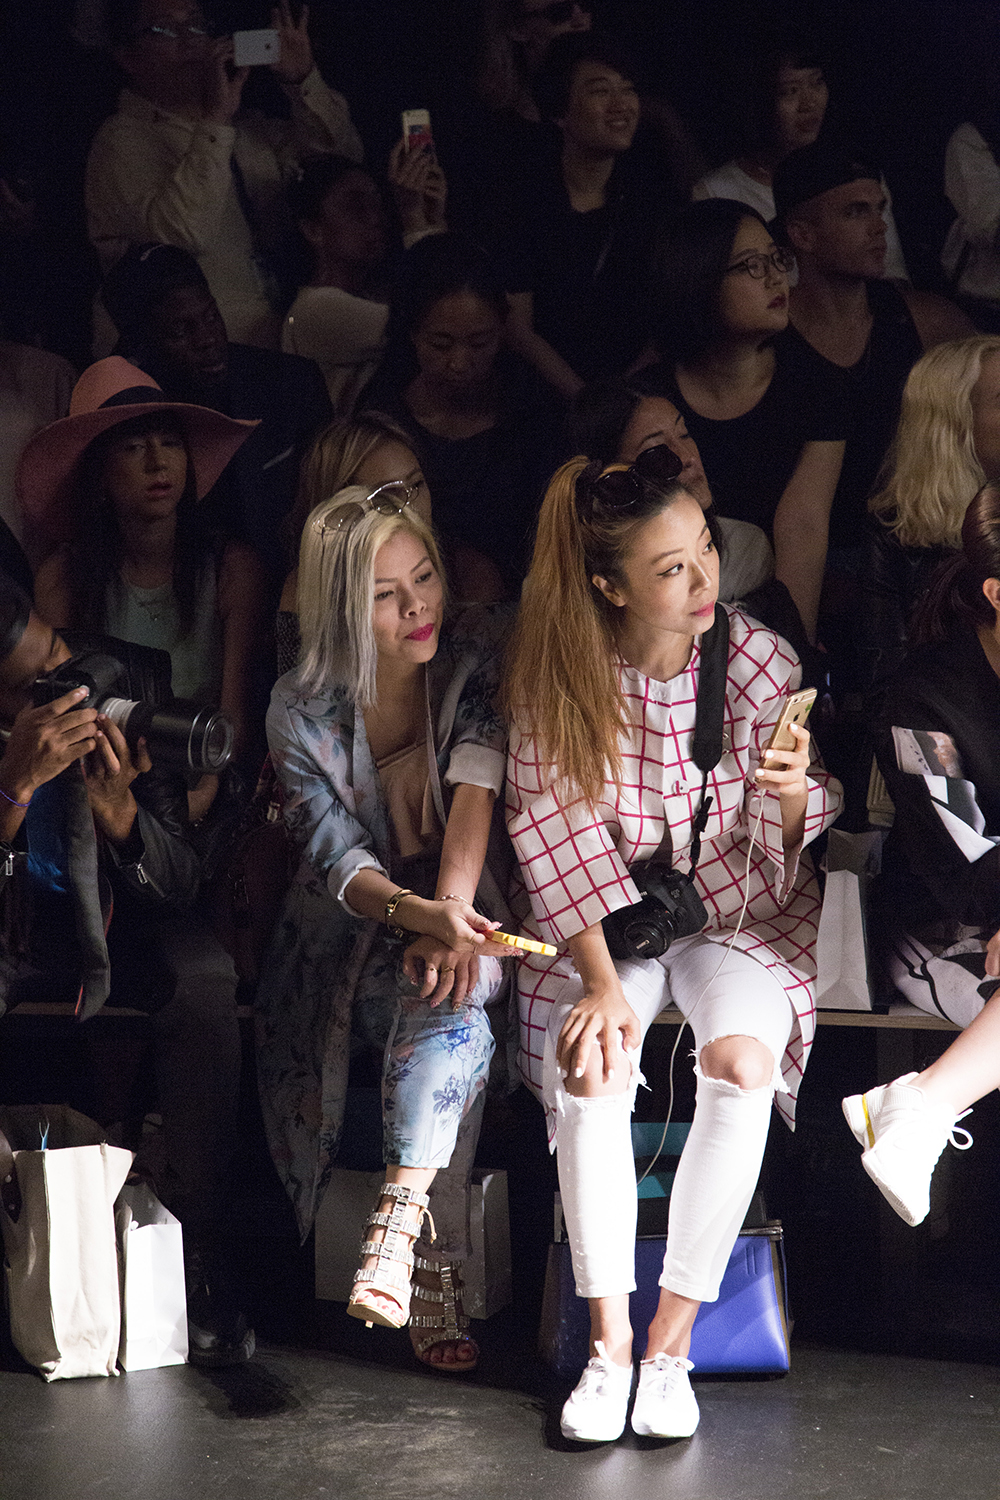 Crystal Phuong- New York Fashion Week Day 5- Frontrow at Concept Korea show